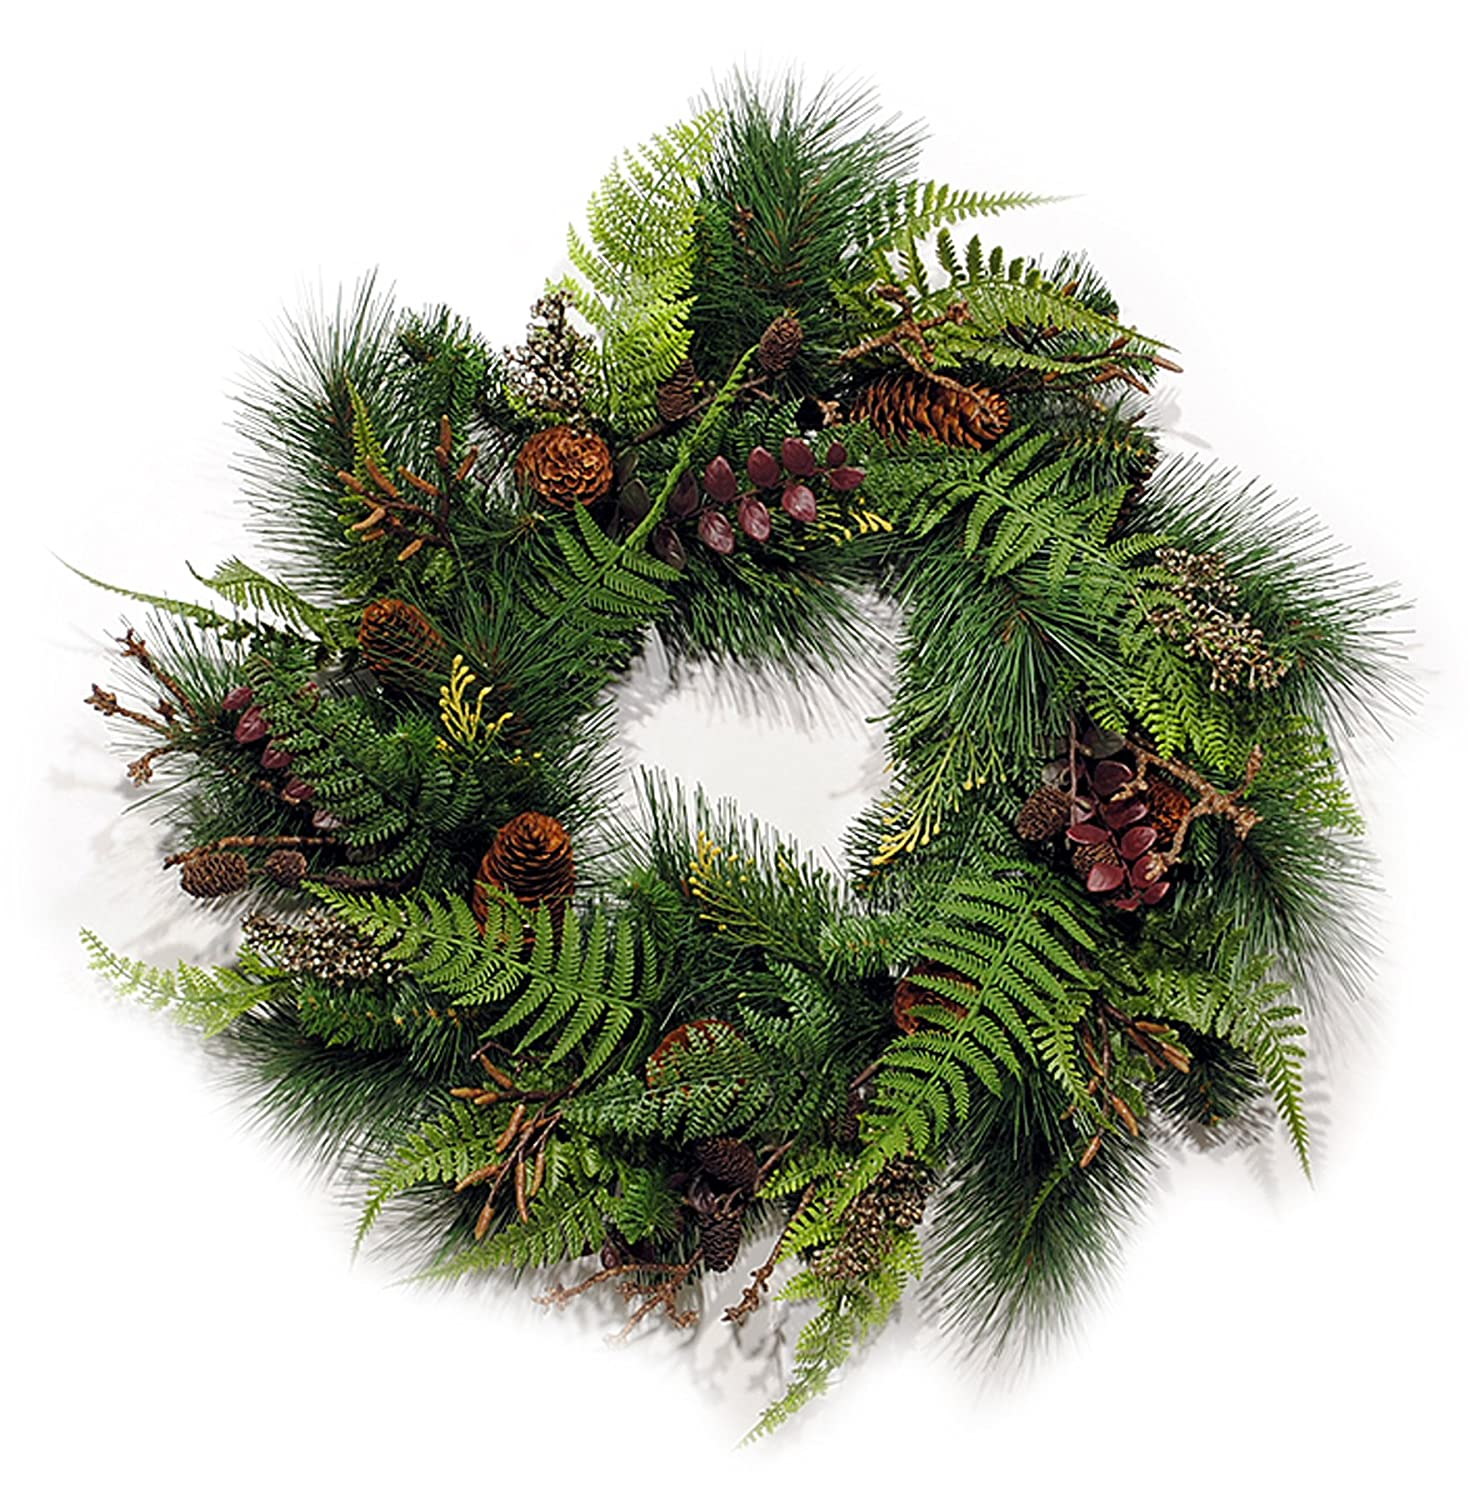 Artificial Mixed Fern Glen and Pine Bough Wreath with Pine Cones